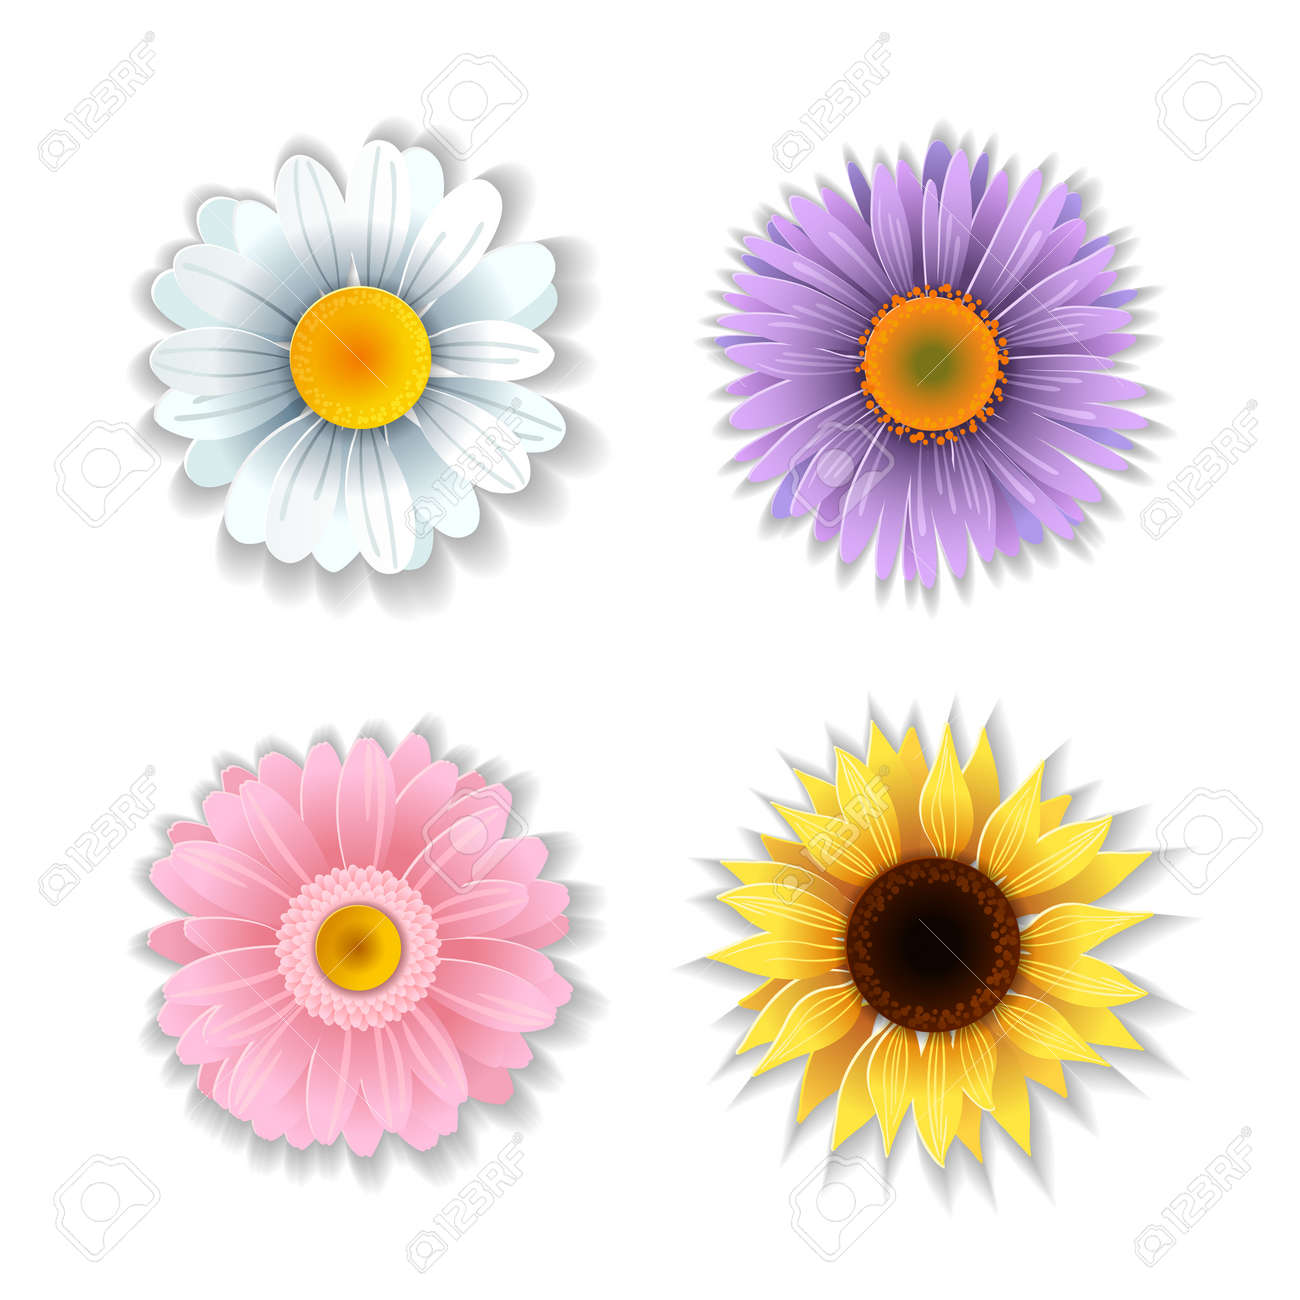 Set Of Cute Paper Art Flowers Origami Flowers Collection Vector